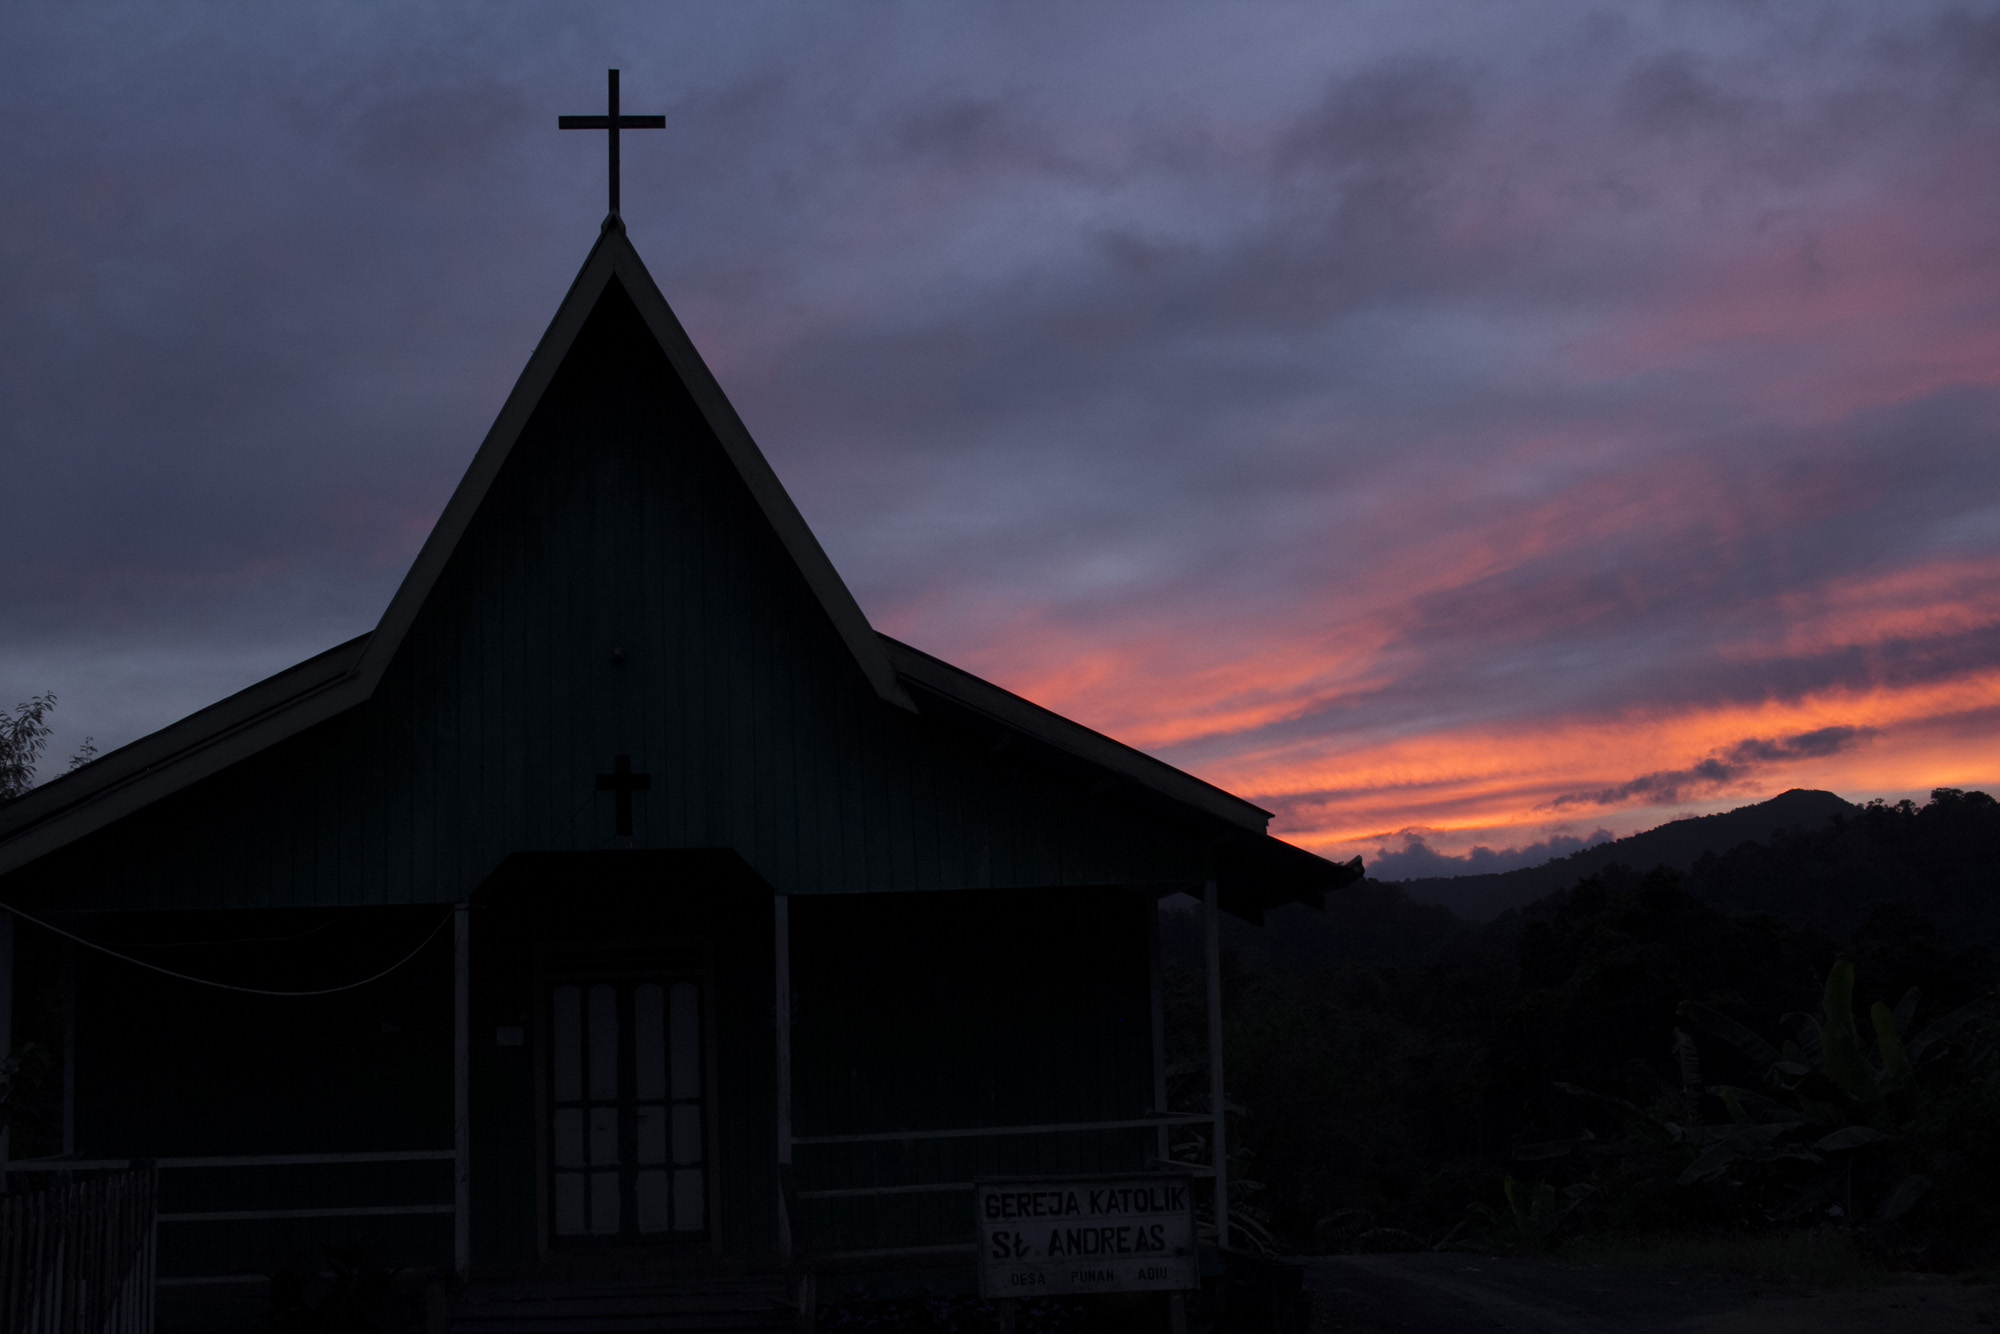 Church in Punan Adiu Village. The history of Catholicism in Punan Adiu was started in 1976 when Italian missionaries and catechists came to Malinau Region. With their education programs, the Punan Adiu and other tribes in the area have gained education and knowledge that would help them in empowering their own community. Most of village leaders who initiated participatory mapping program were students from Catholic school in Malinau.